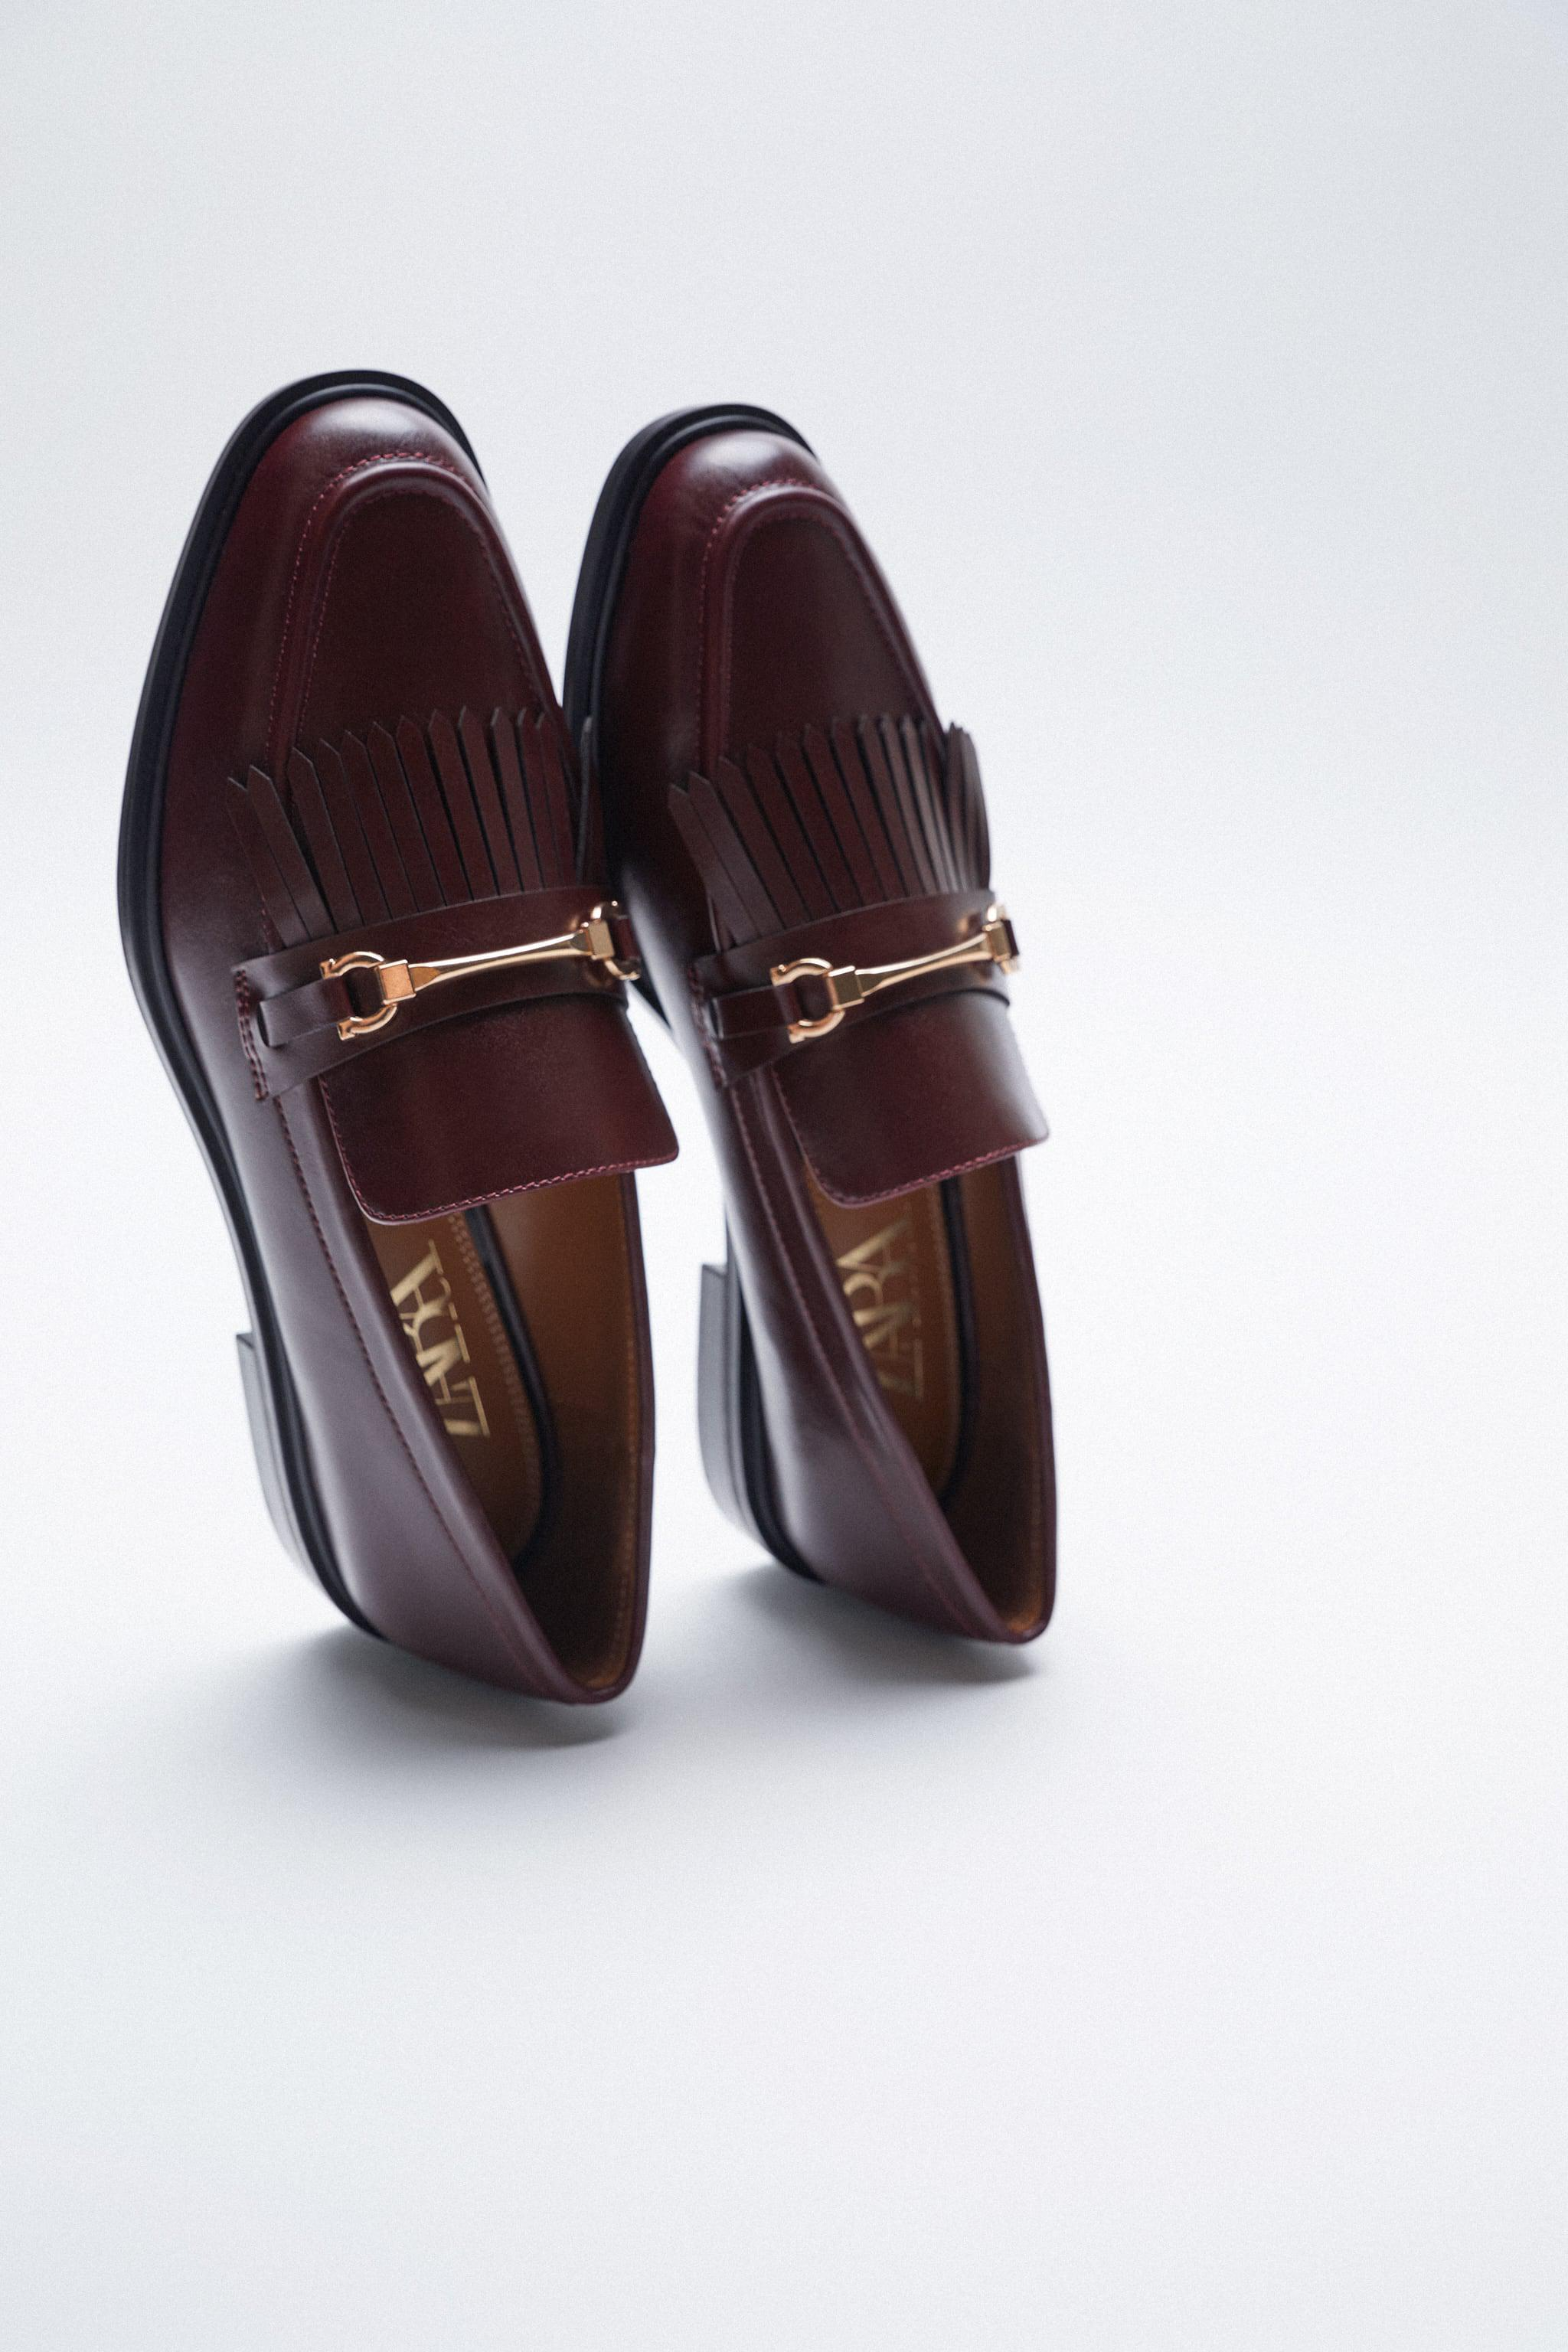 LOW HEEL FRINGED LOAFERS 3